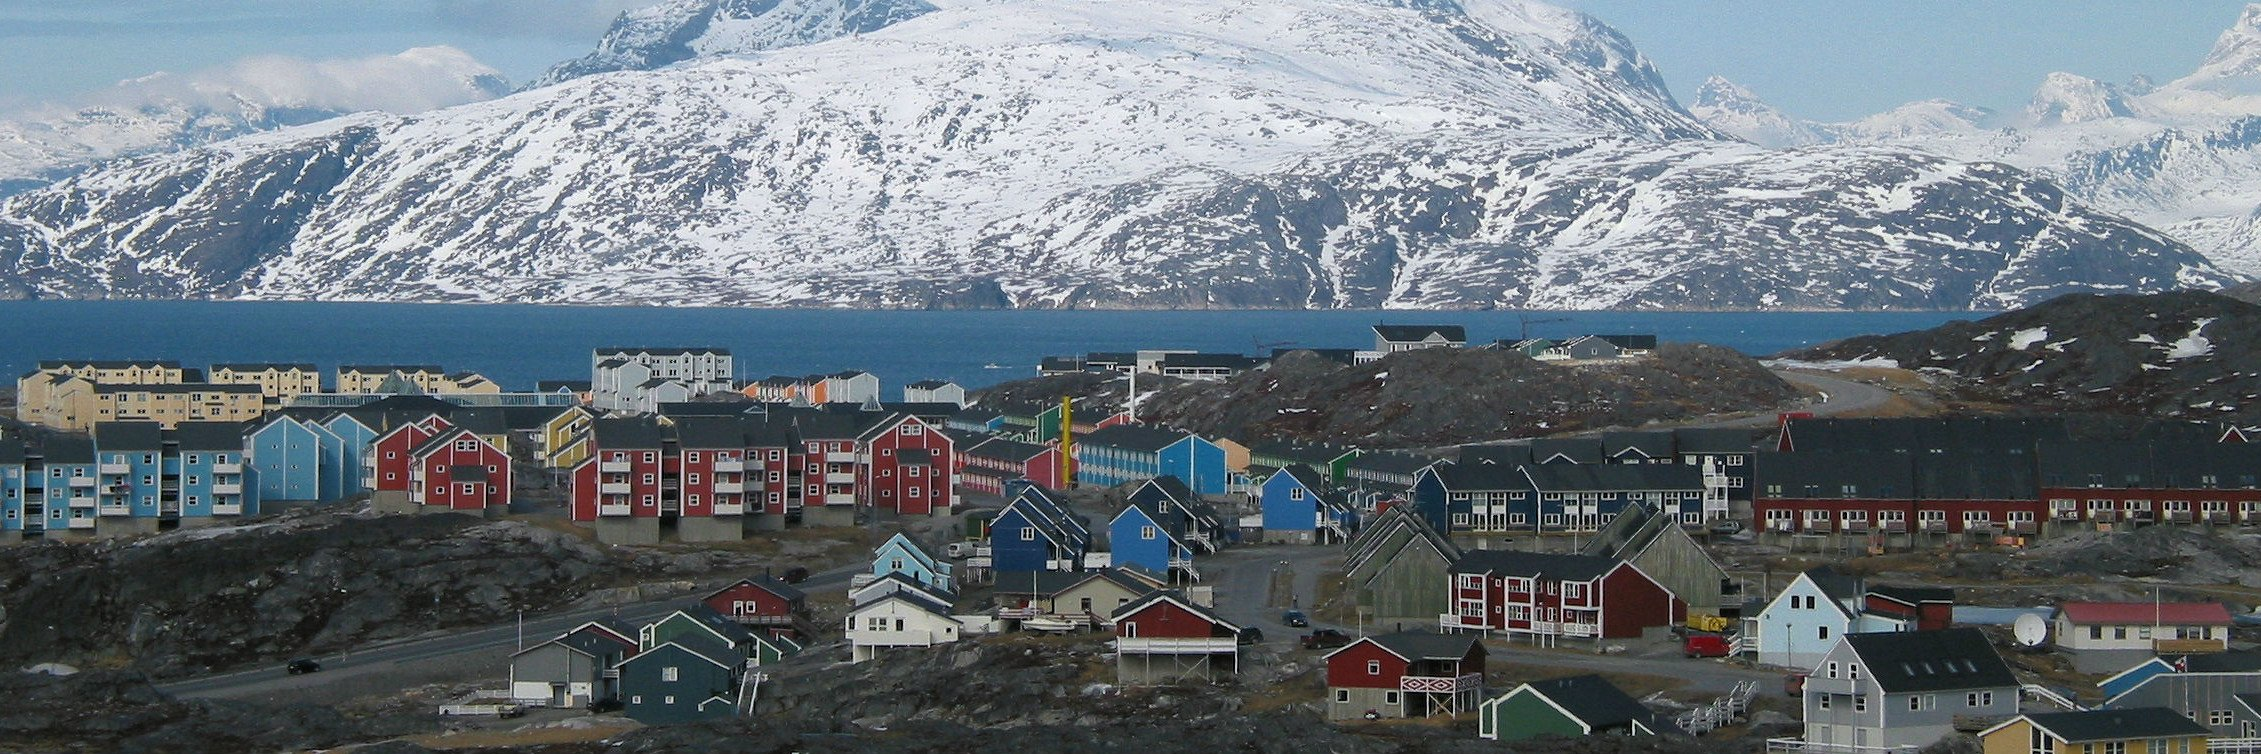 Nuuk, Greenland's capital, played host to the 2016 Arctic Winter Games. Will hosting the games raise Greenland's global profile (Oliver Schauf via Wikimedia Commons)